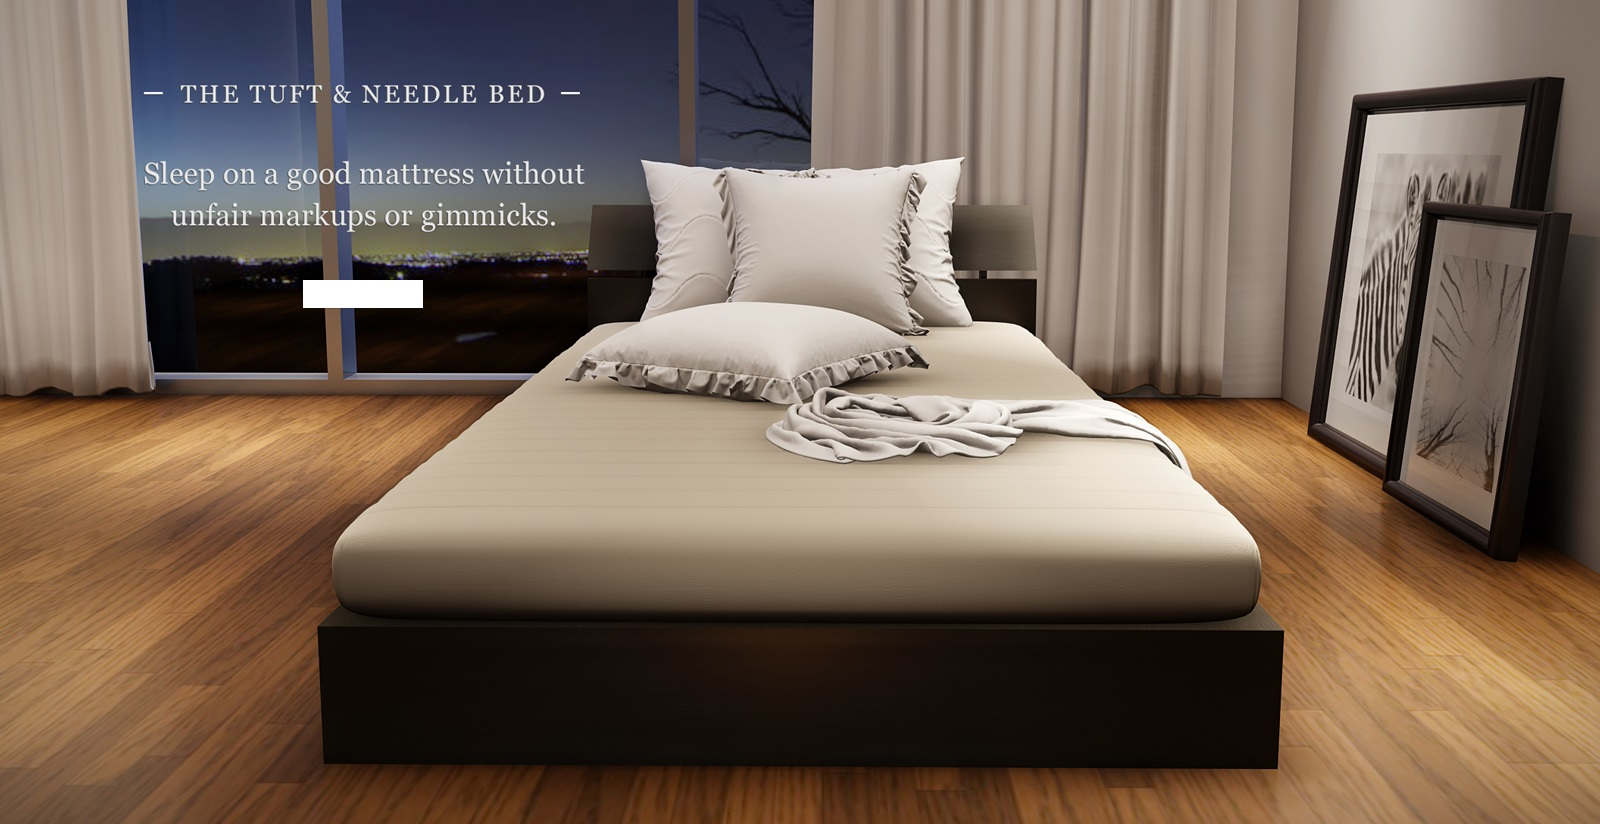 Tuft & Needle Is Reshaping The Mattress Industry Startup